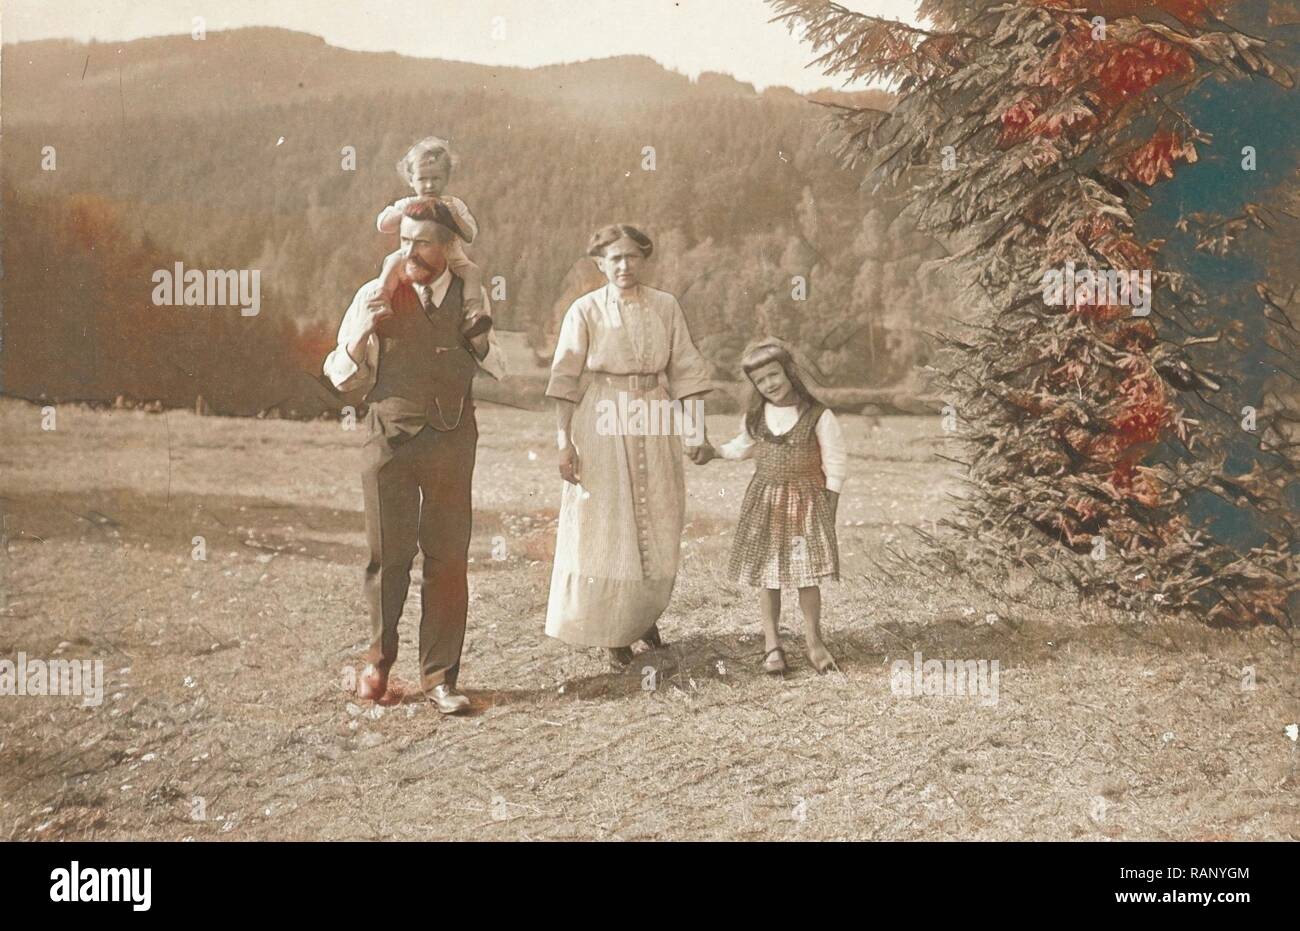 Waldemar Titzenthaler, the photographer, with his wife Olga and children Marba and Eckart in a clearing, Waldemar reimagined - Stock Image